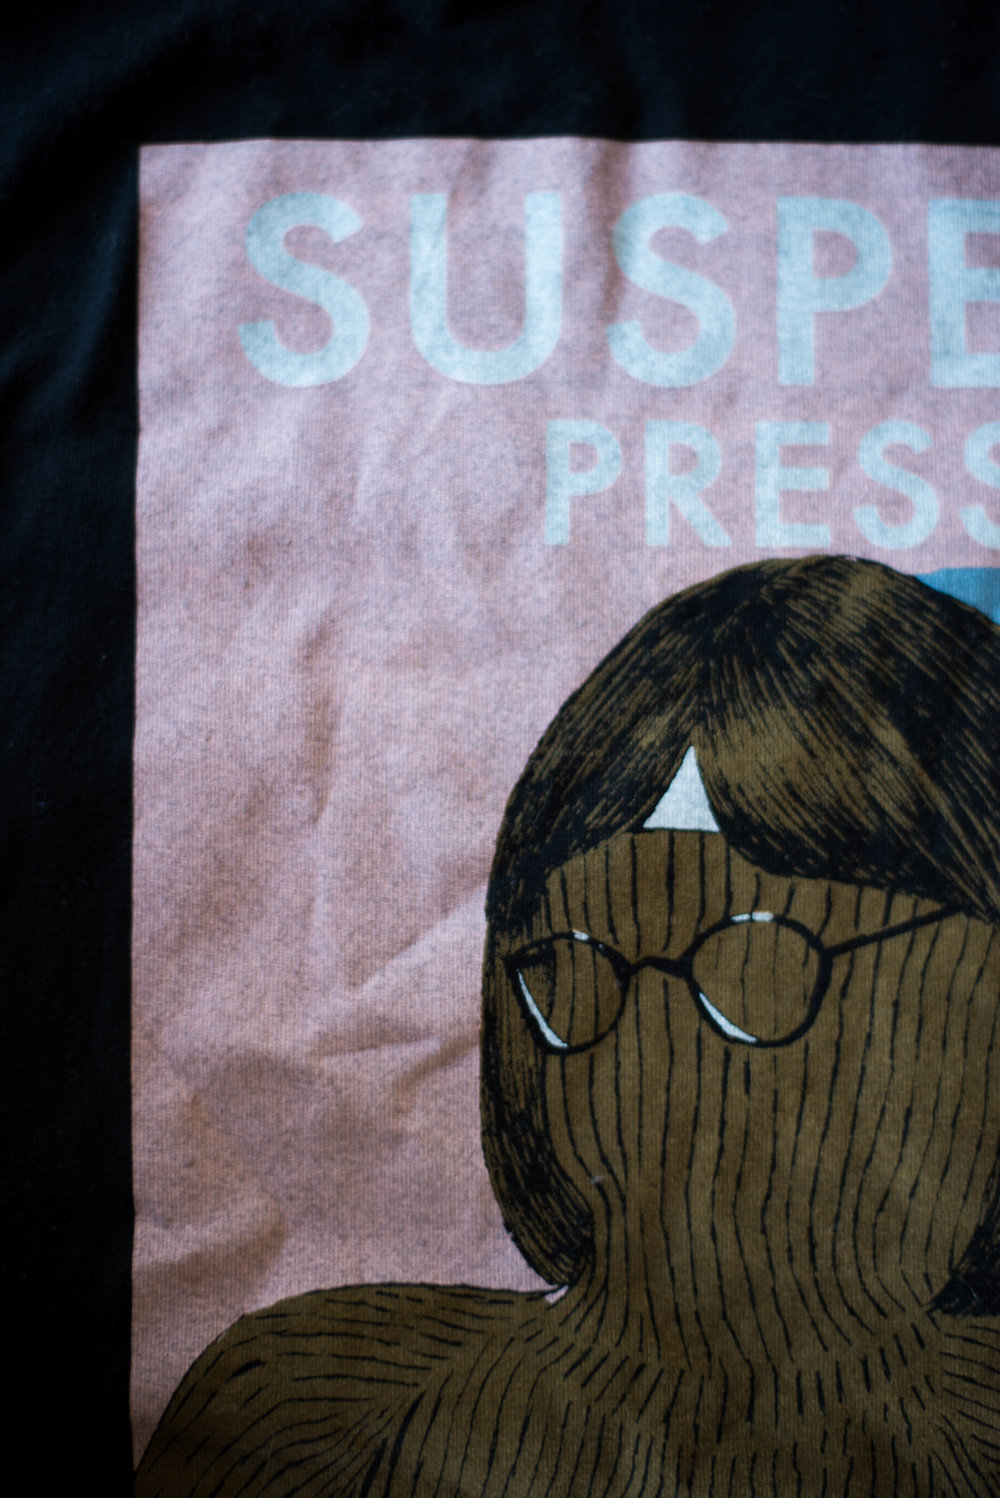 Suspect Press. Print method VINTAGE. Screen printed on a Next Level shirt. Printed by A Small Print Shop.